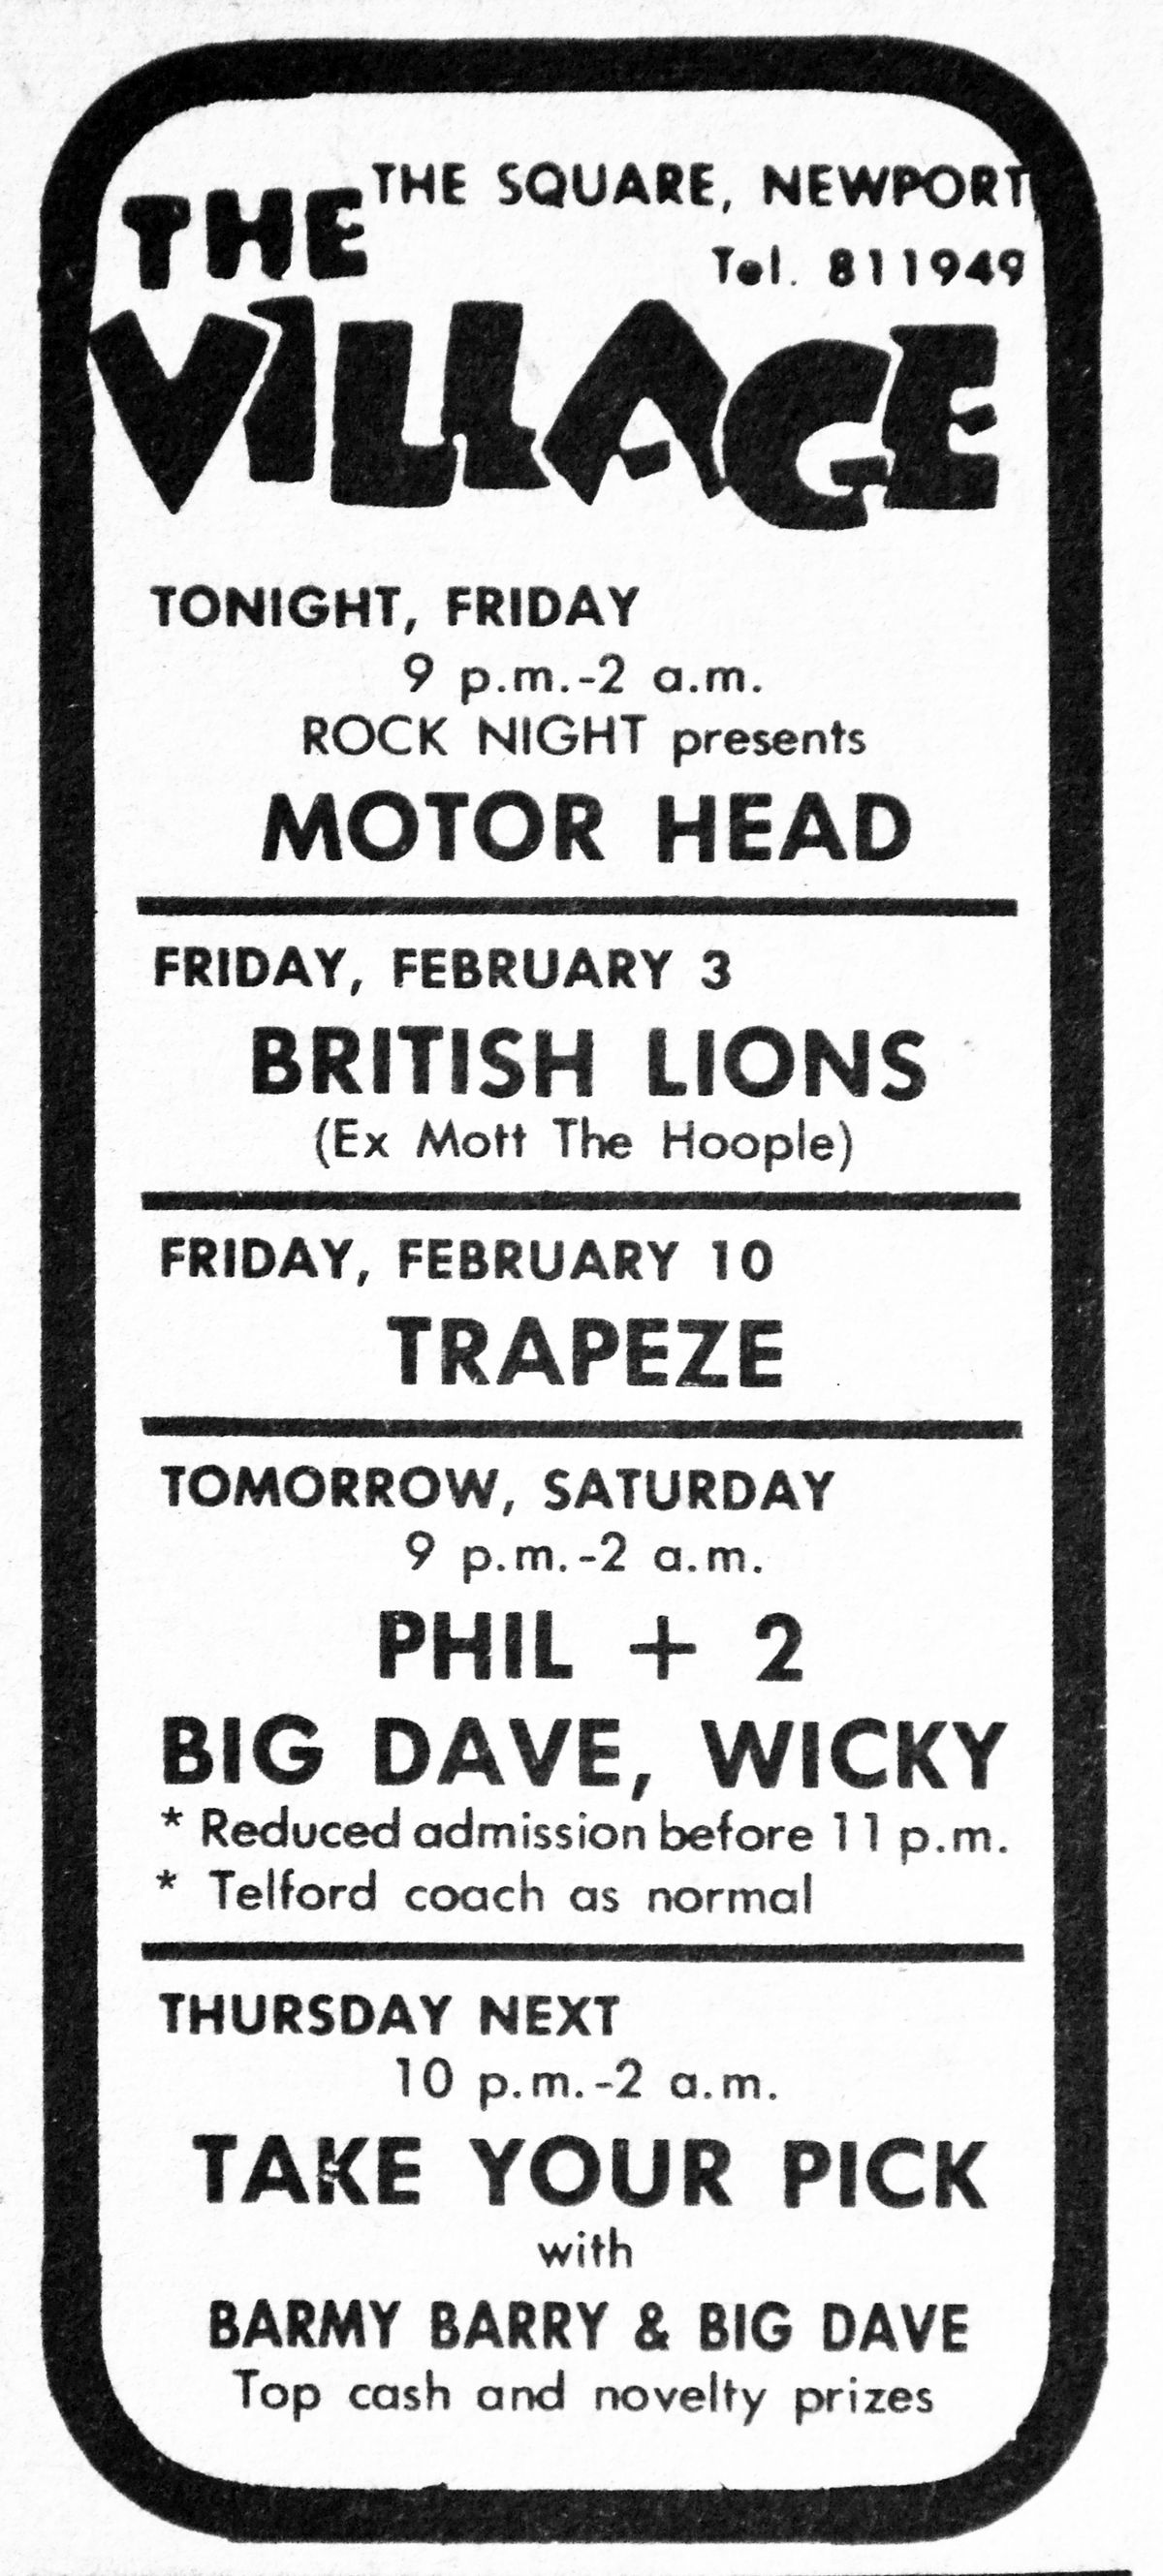 Worst gig ever? Motorhead at The Village, January 27, 1978.